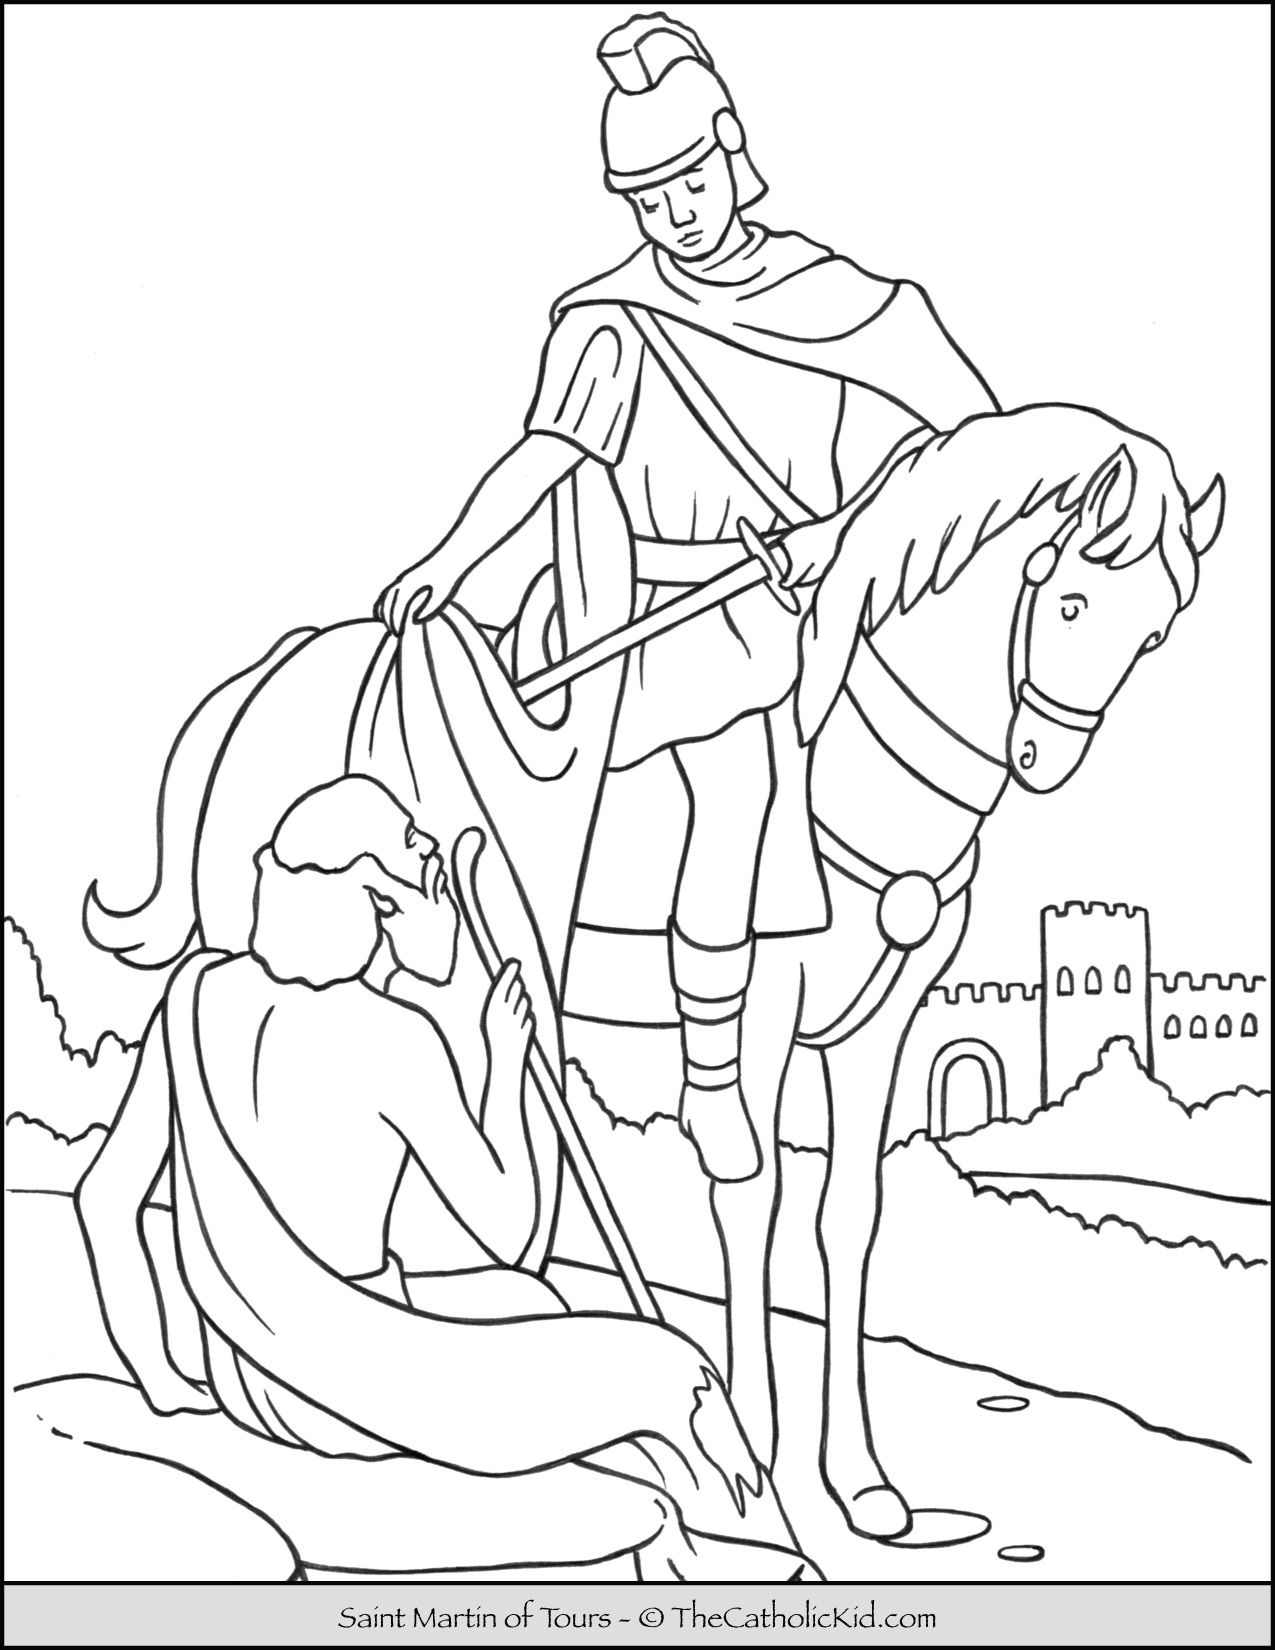 Saint Martin Of Tours Coloring Page Thecatholickid Com St